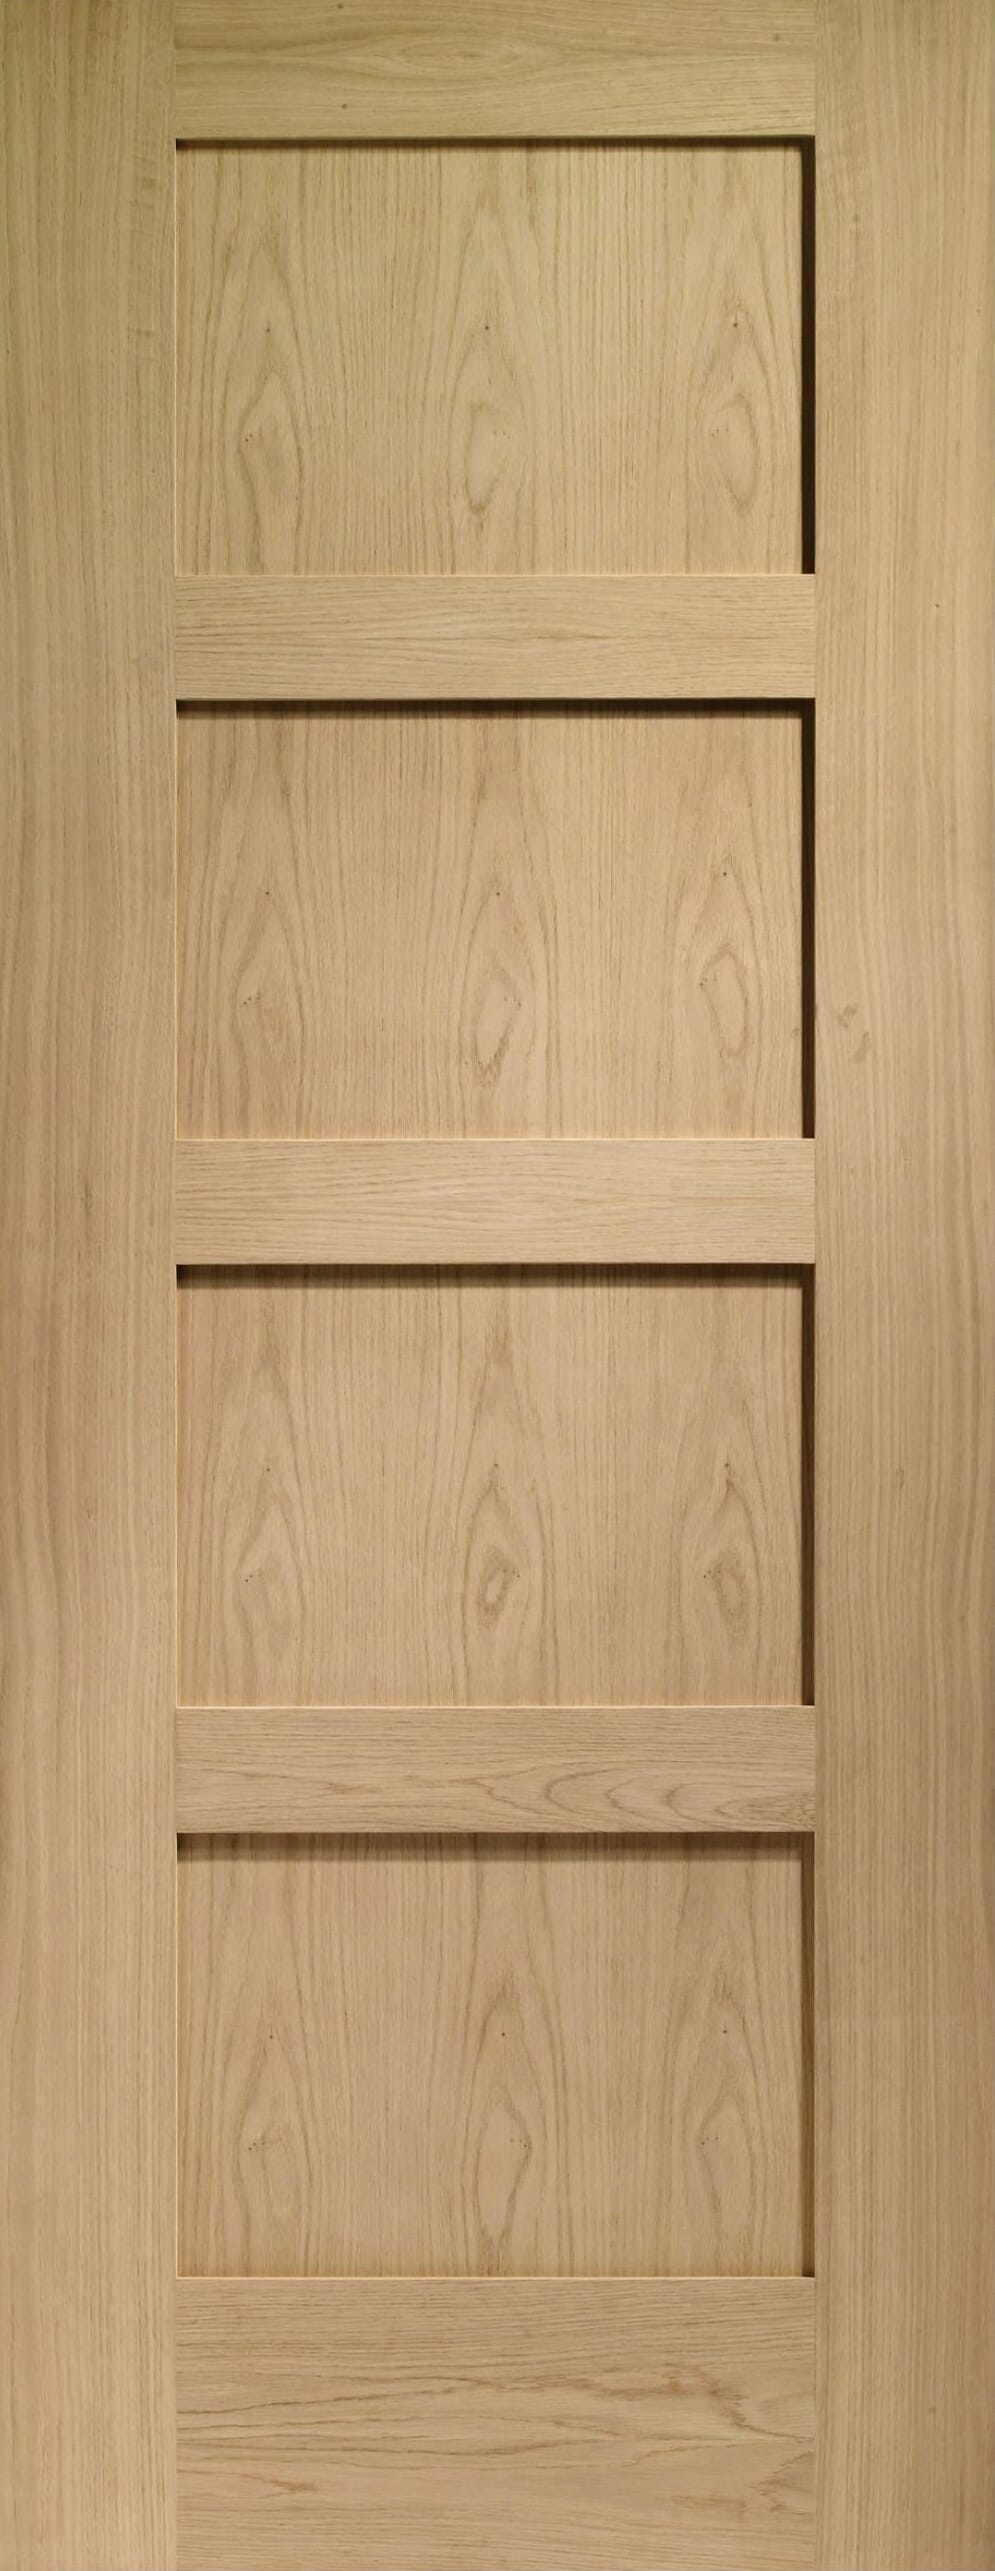 Oak Shaker 4 Panel - Prefinished Image